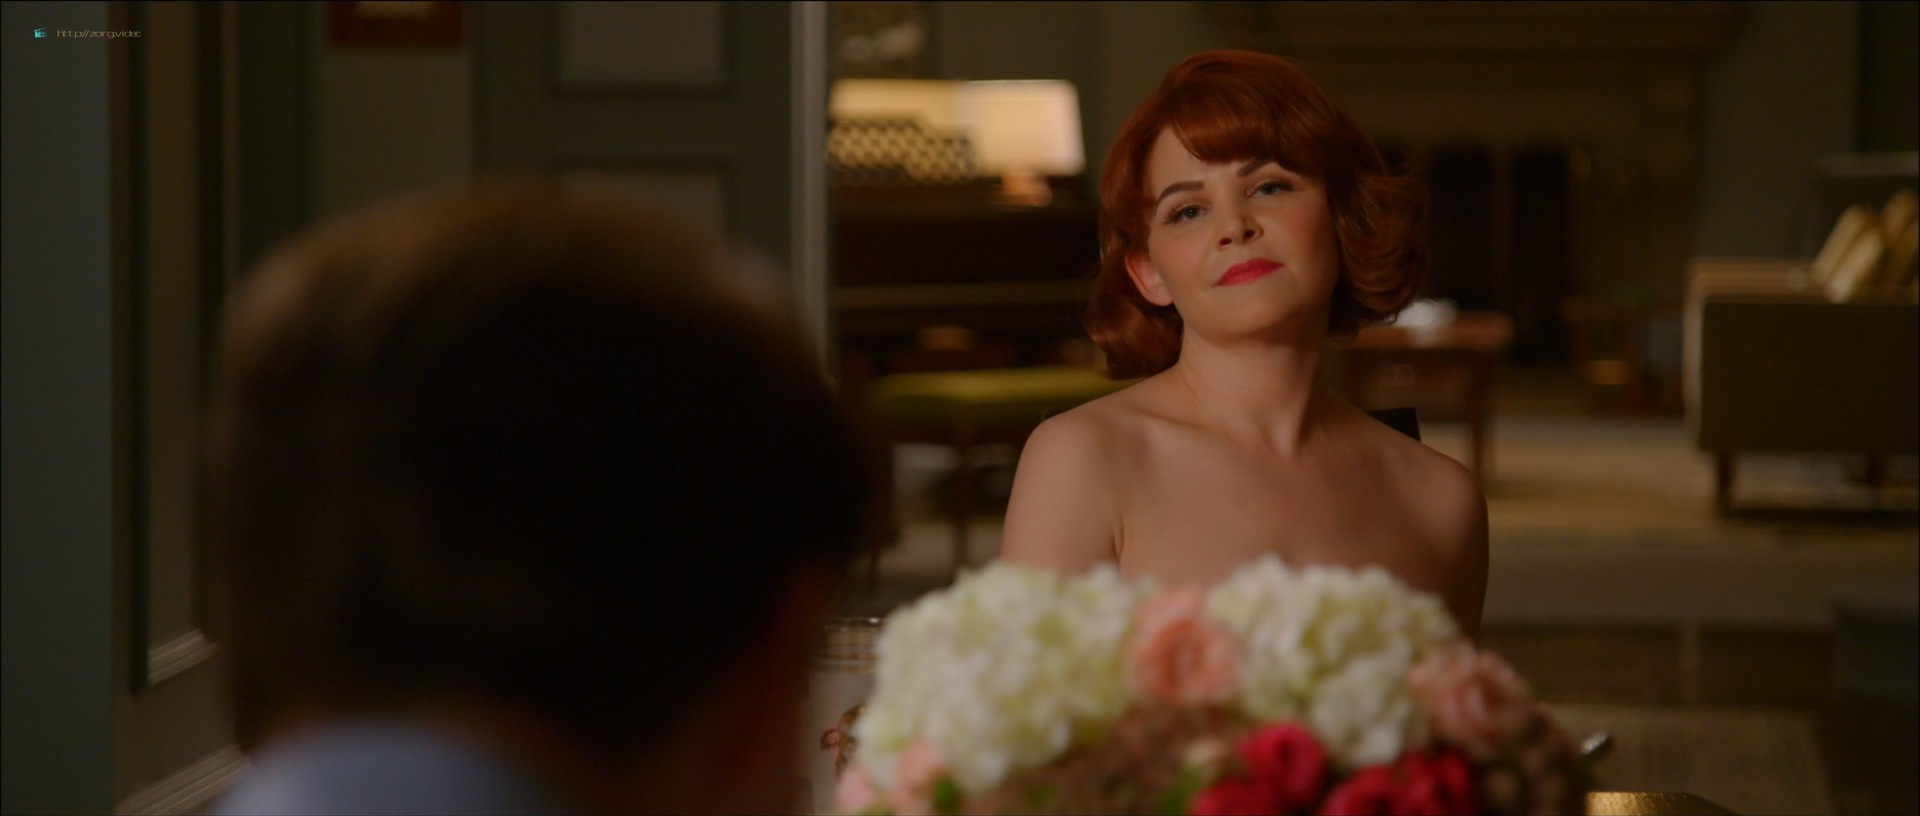 Ginnifer Goodwin nude butt Alexandra Daddario and others hot and sexy - Why Women Kill (2019) s1e2 HD 1080p Web (14)